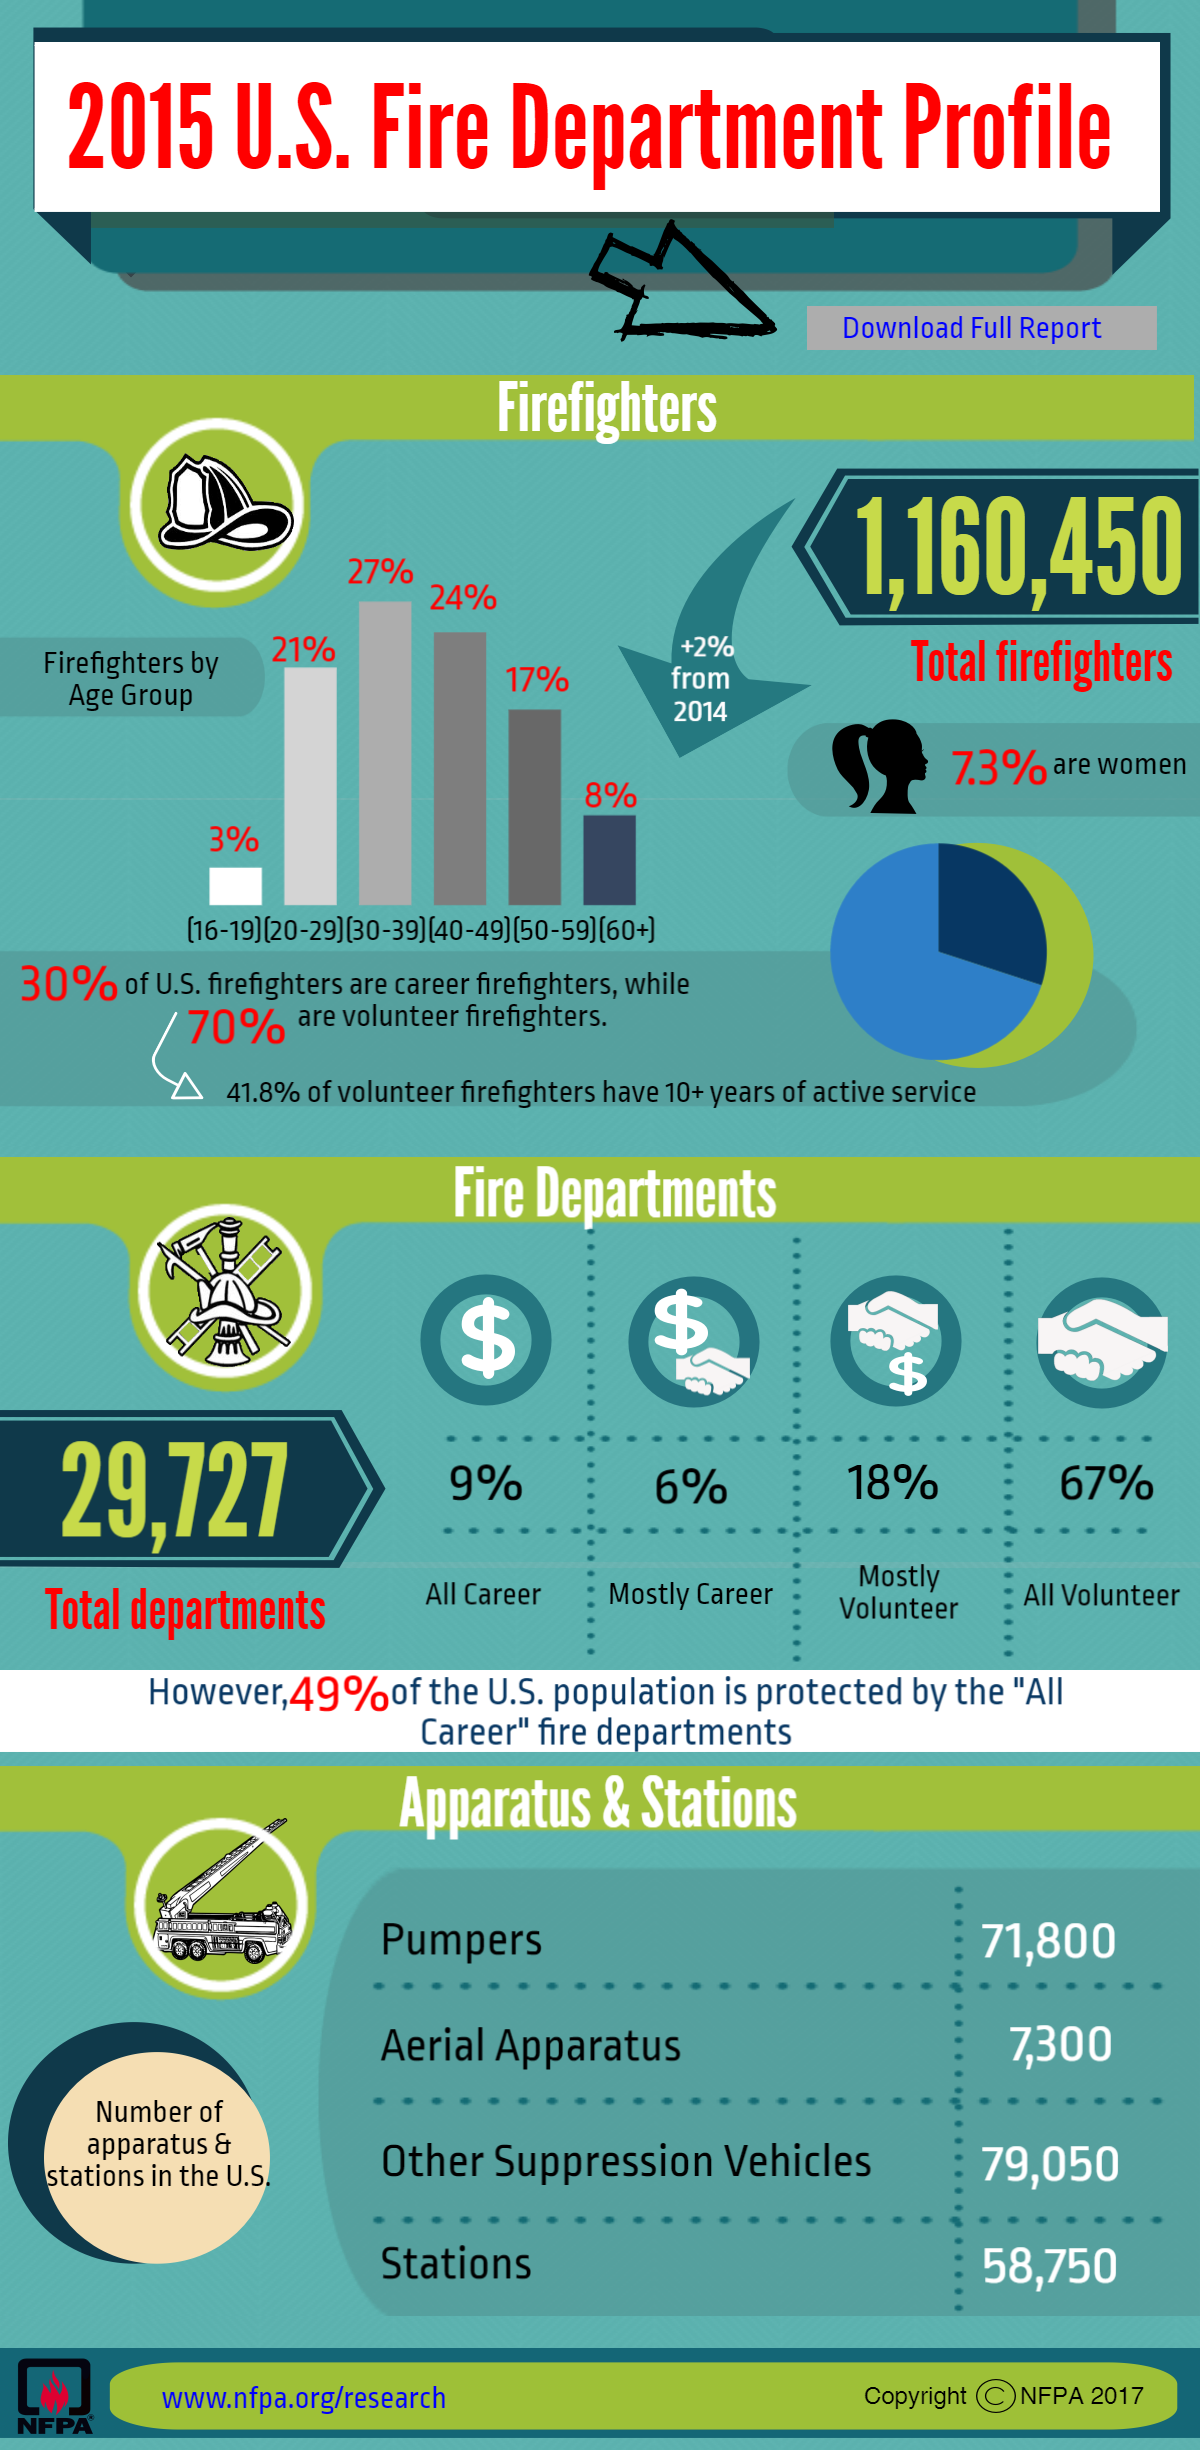 fire protection engineering in the 21st century essay The profession of fire protection engineering a career path choice for university of st thomas engineering students minnesota chapter society of fire protection engineers presentation to ust students fire protection engineering in the 21st century.